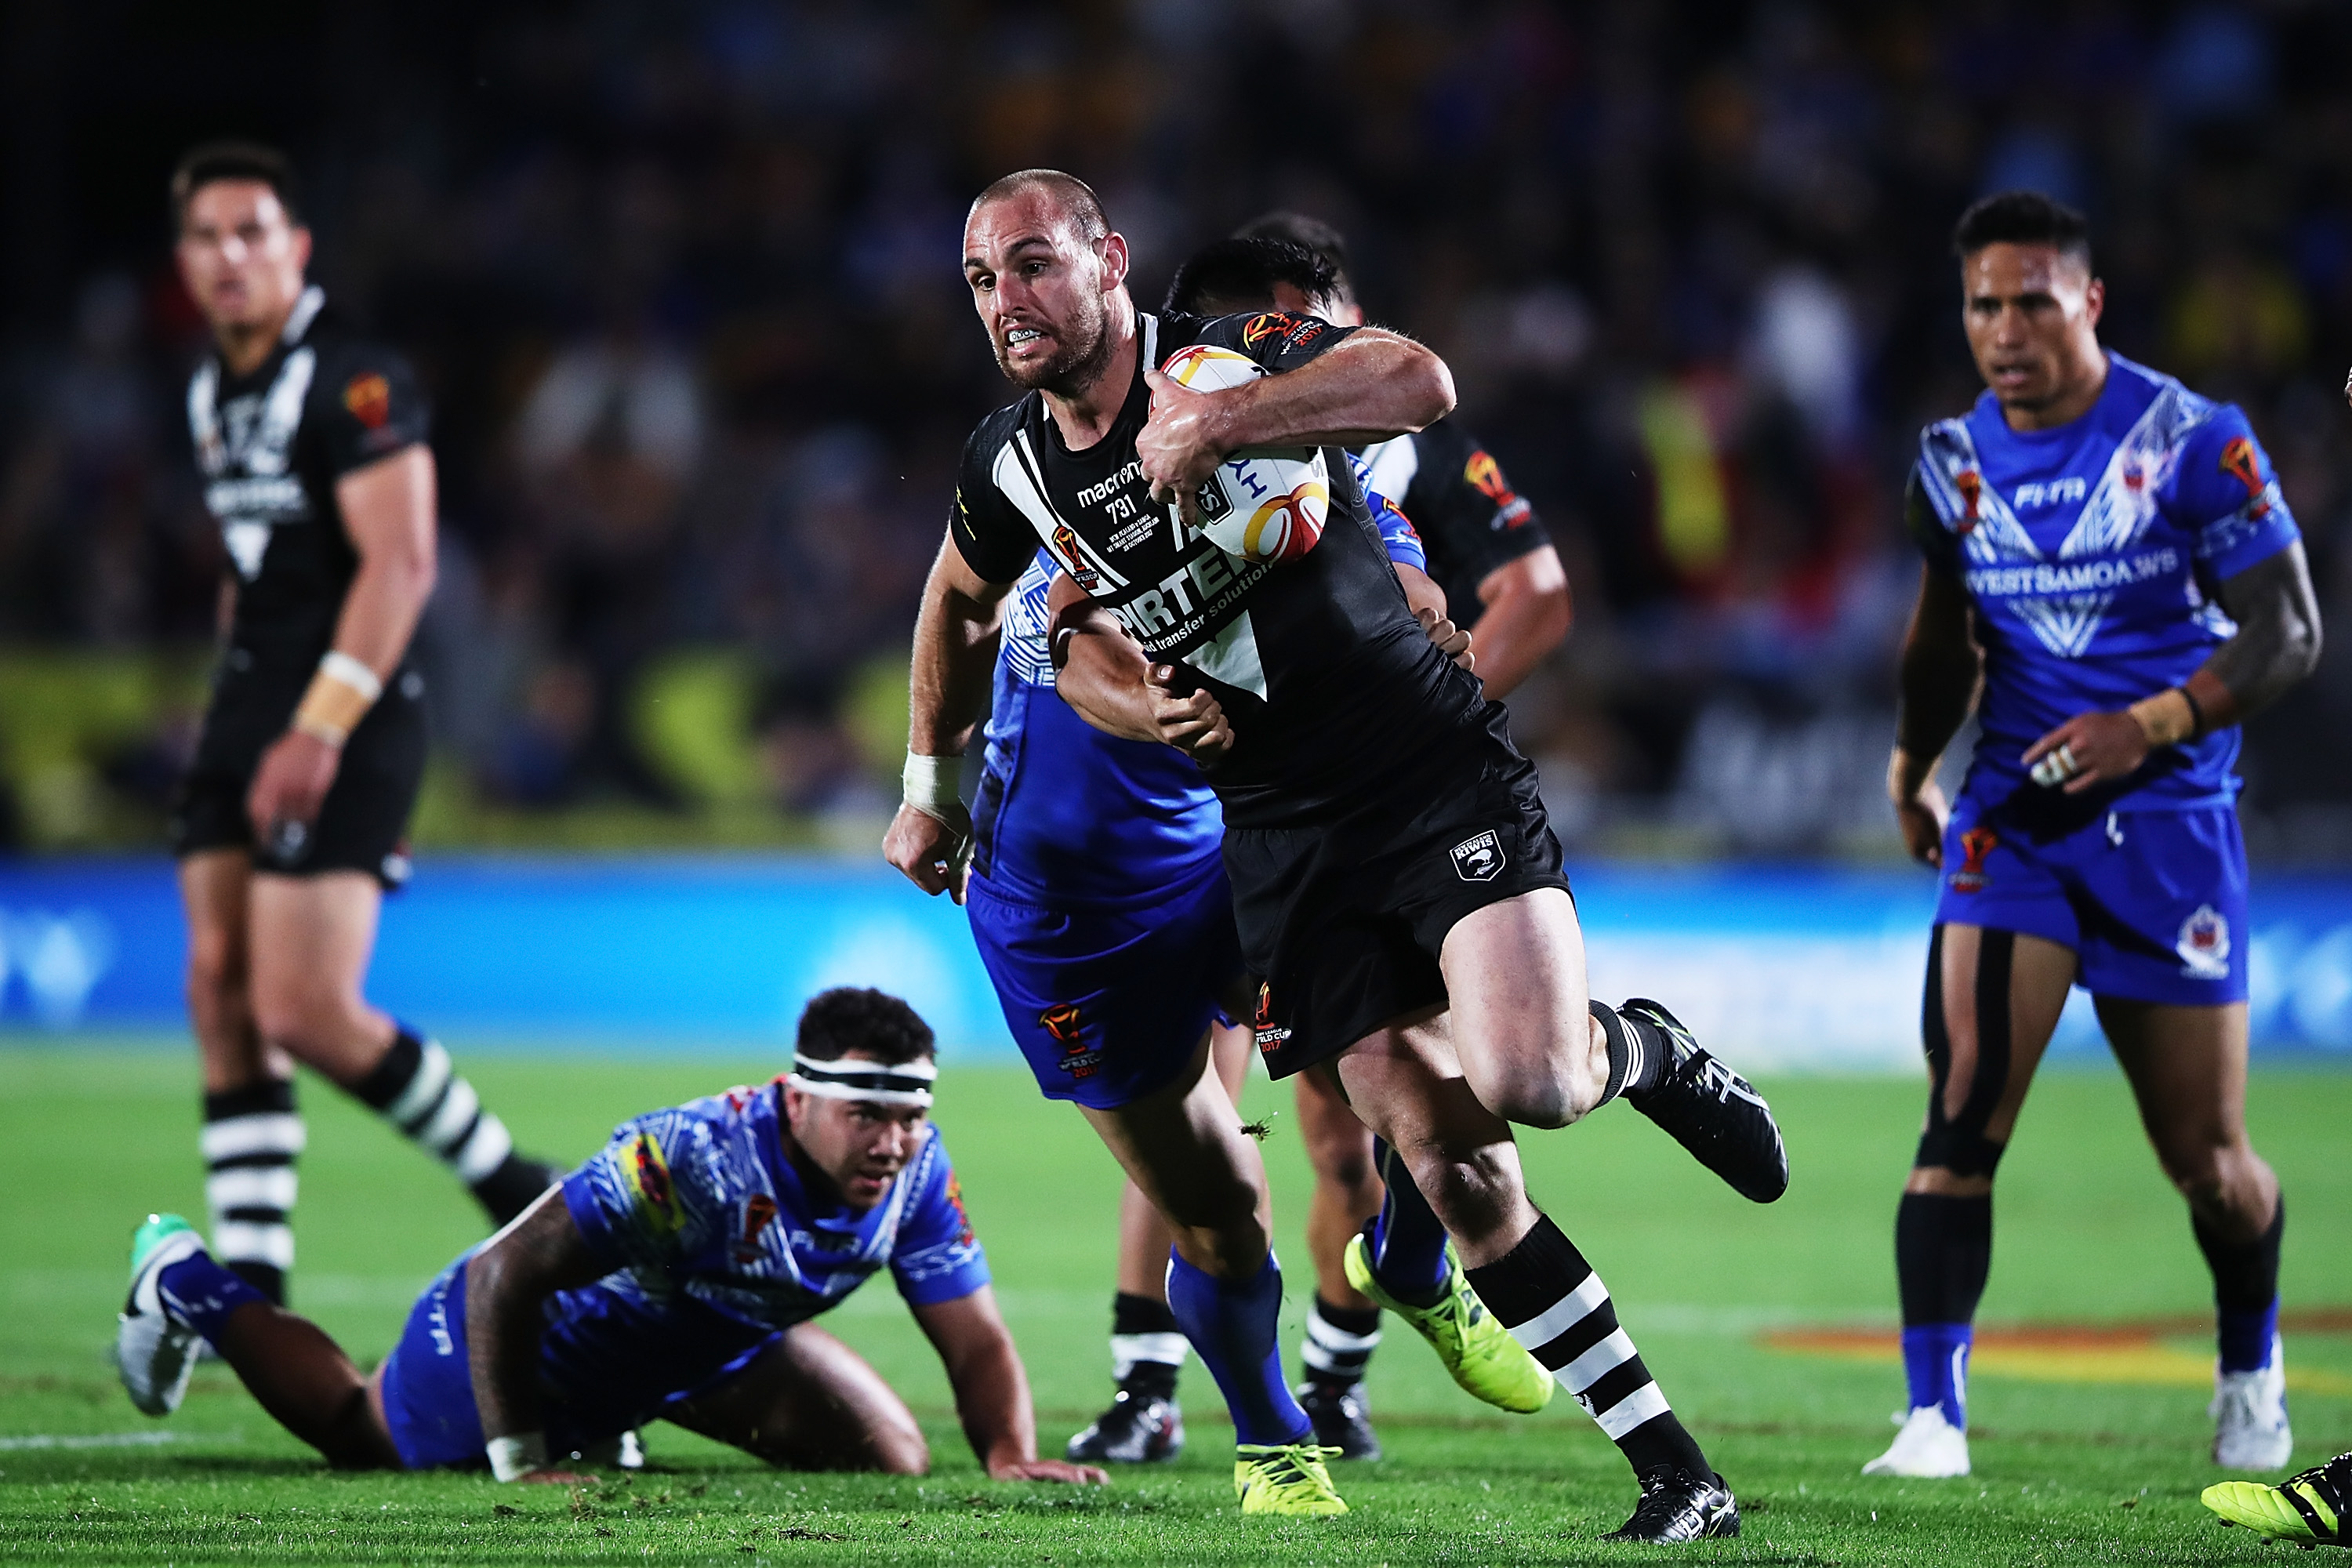 062c340a665 As it happened: Kiwis v Samoa, Rugby League World Cup - NZ Herald